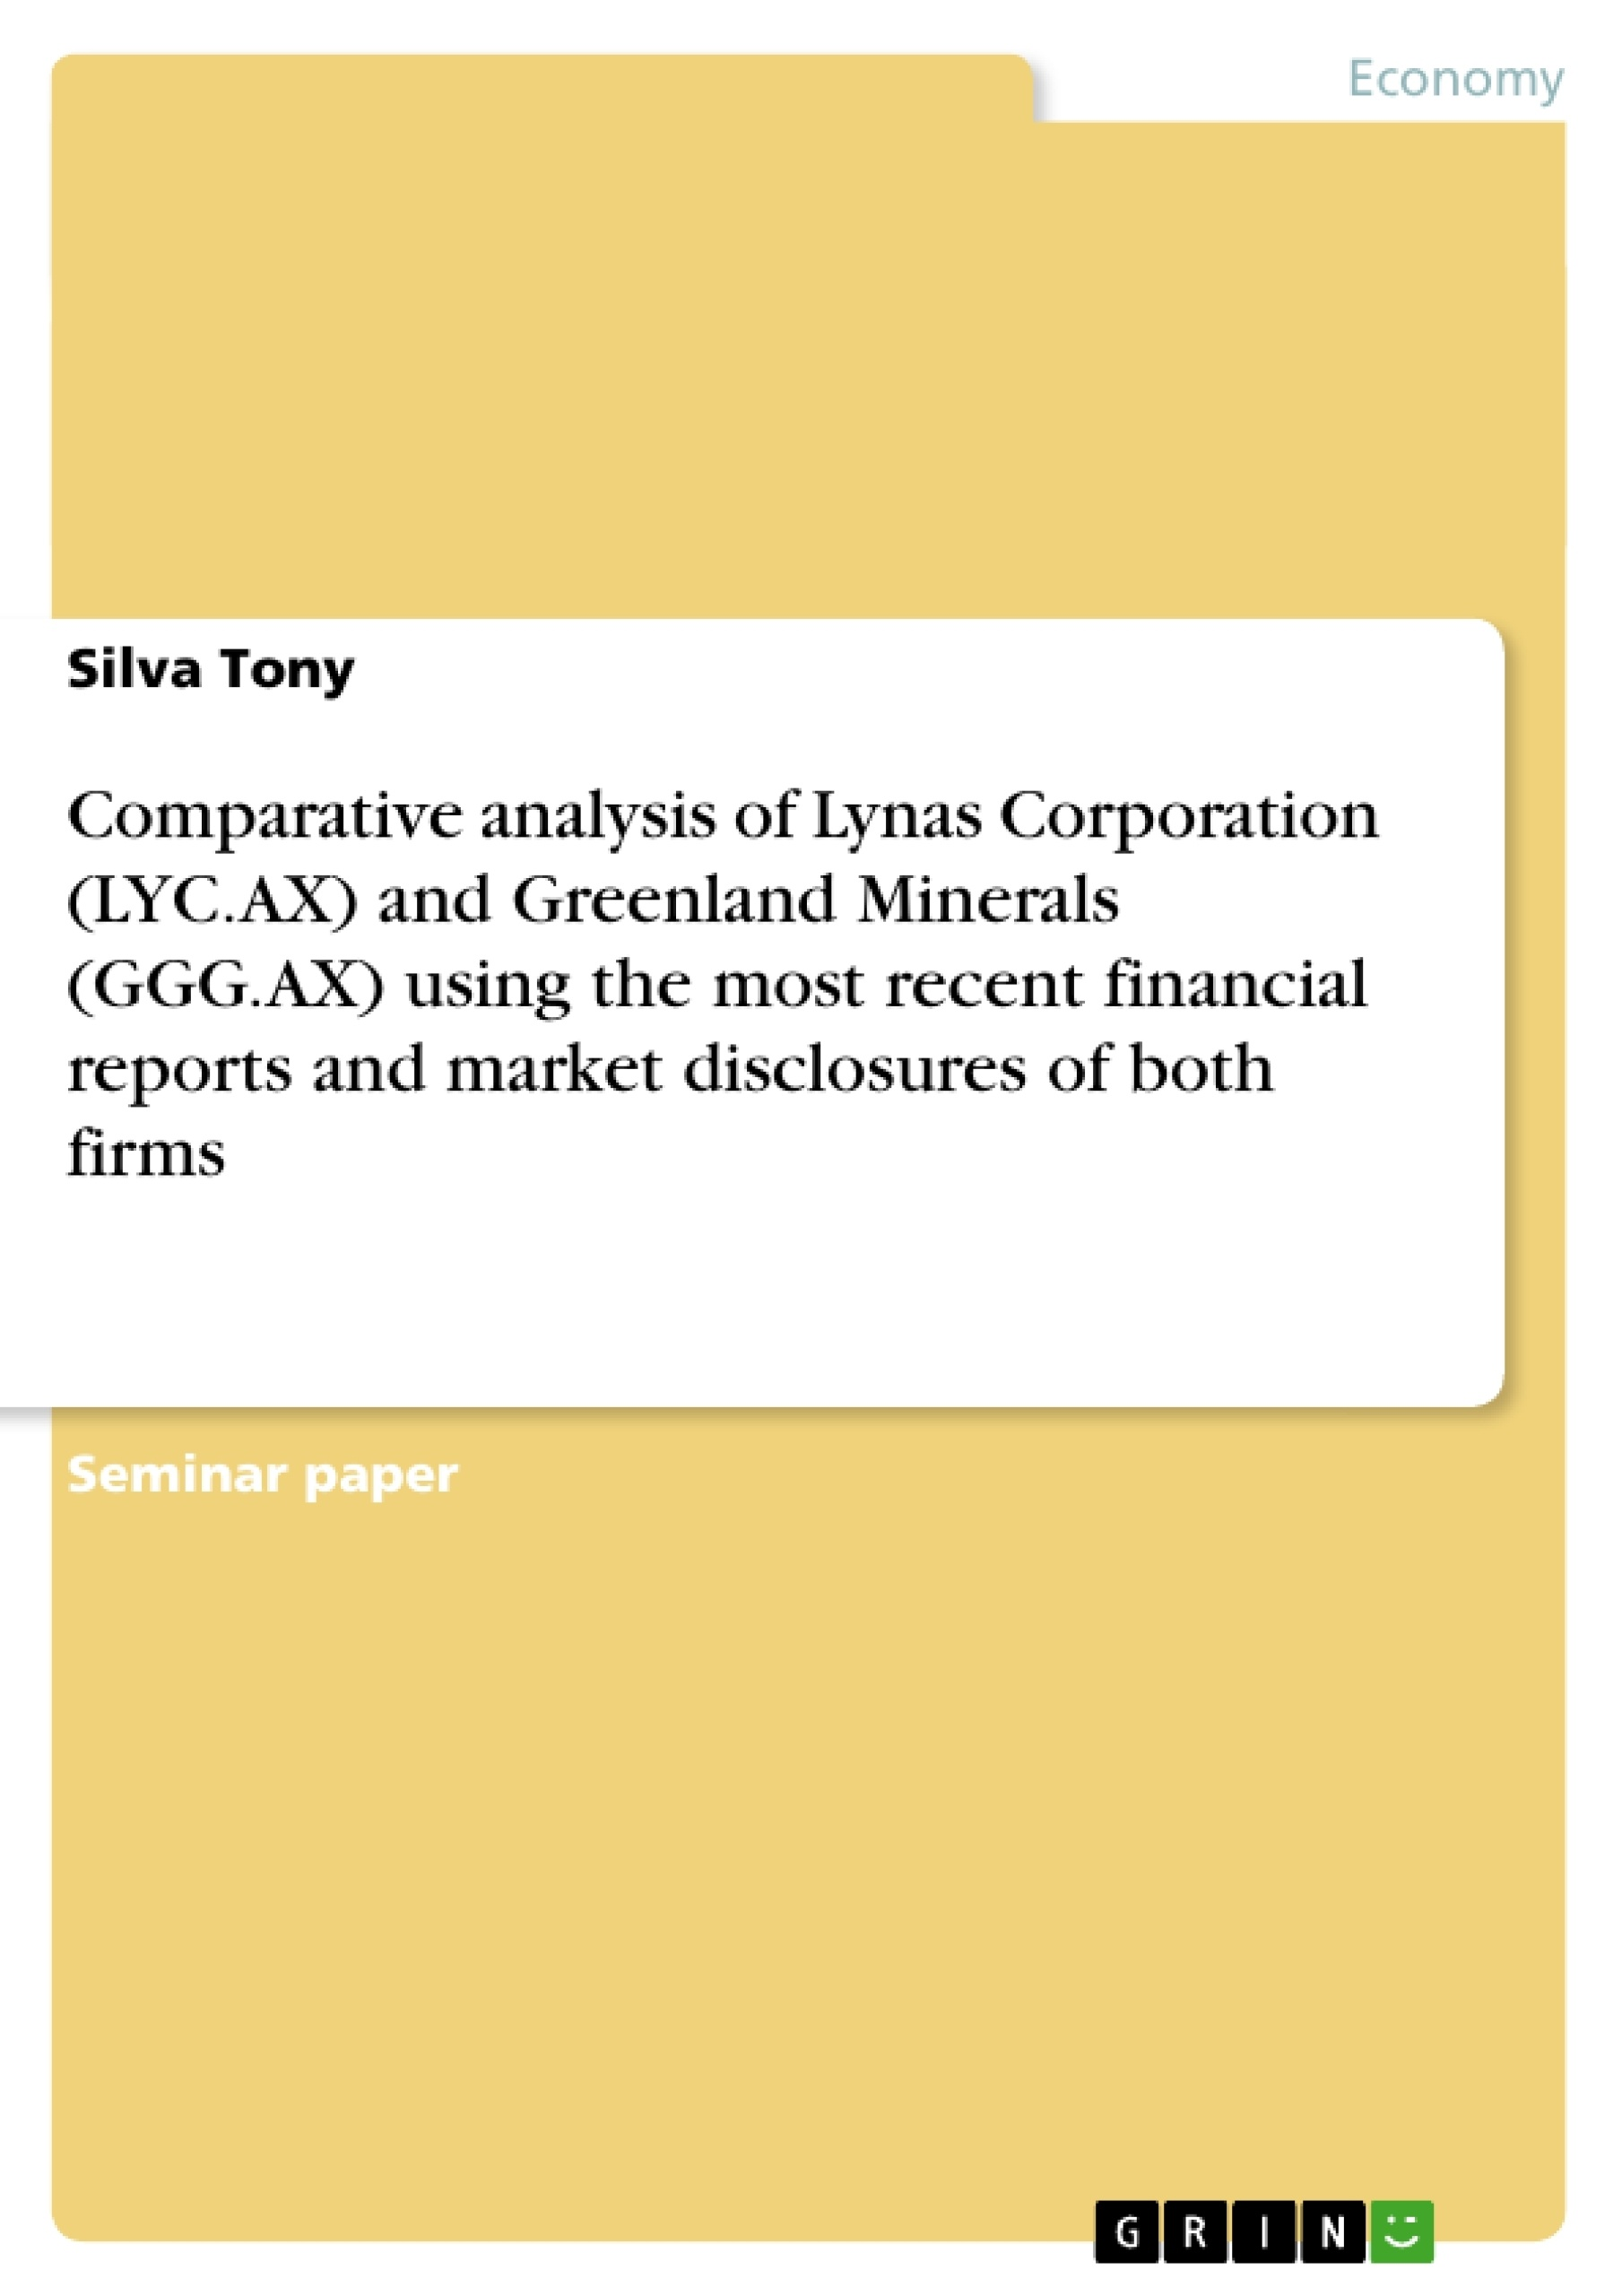 Title: Comparative analysis of Lynas Corporation (LYC.AX) and Greenland Minerals (GGG.AX) using the most recent financial reports and market disclosures of both firms